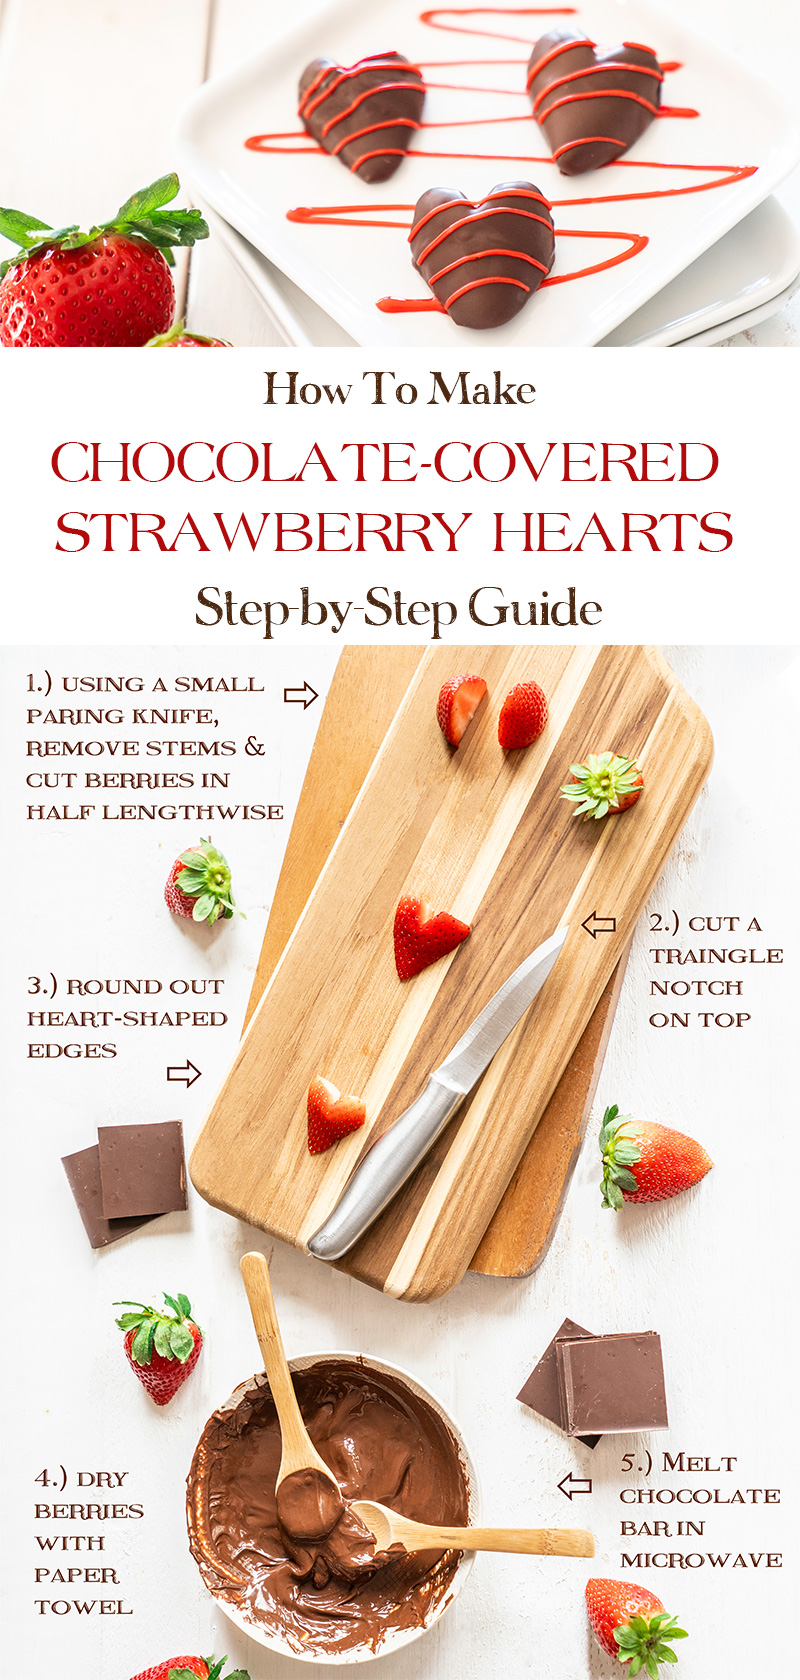 How-To-Make-Chocolate-Covered-Strawberry-Hearts-Step-by-Step-Guide